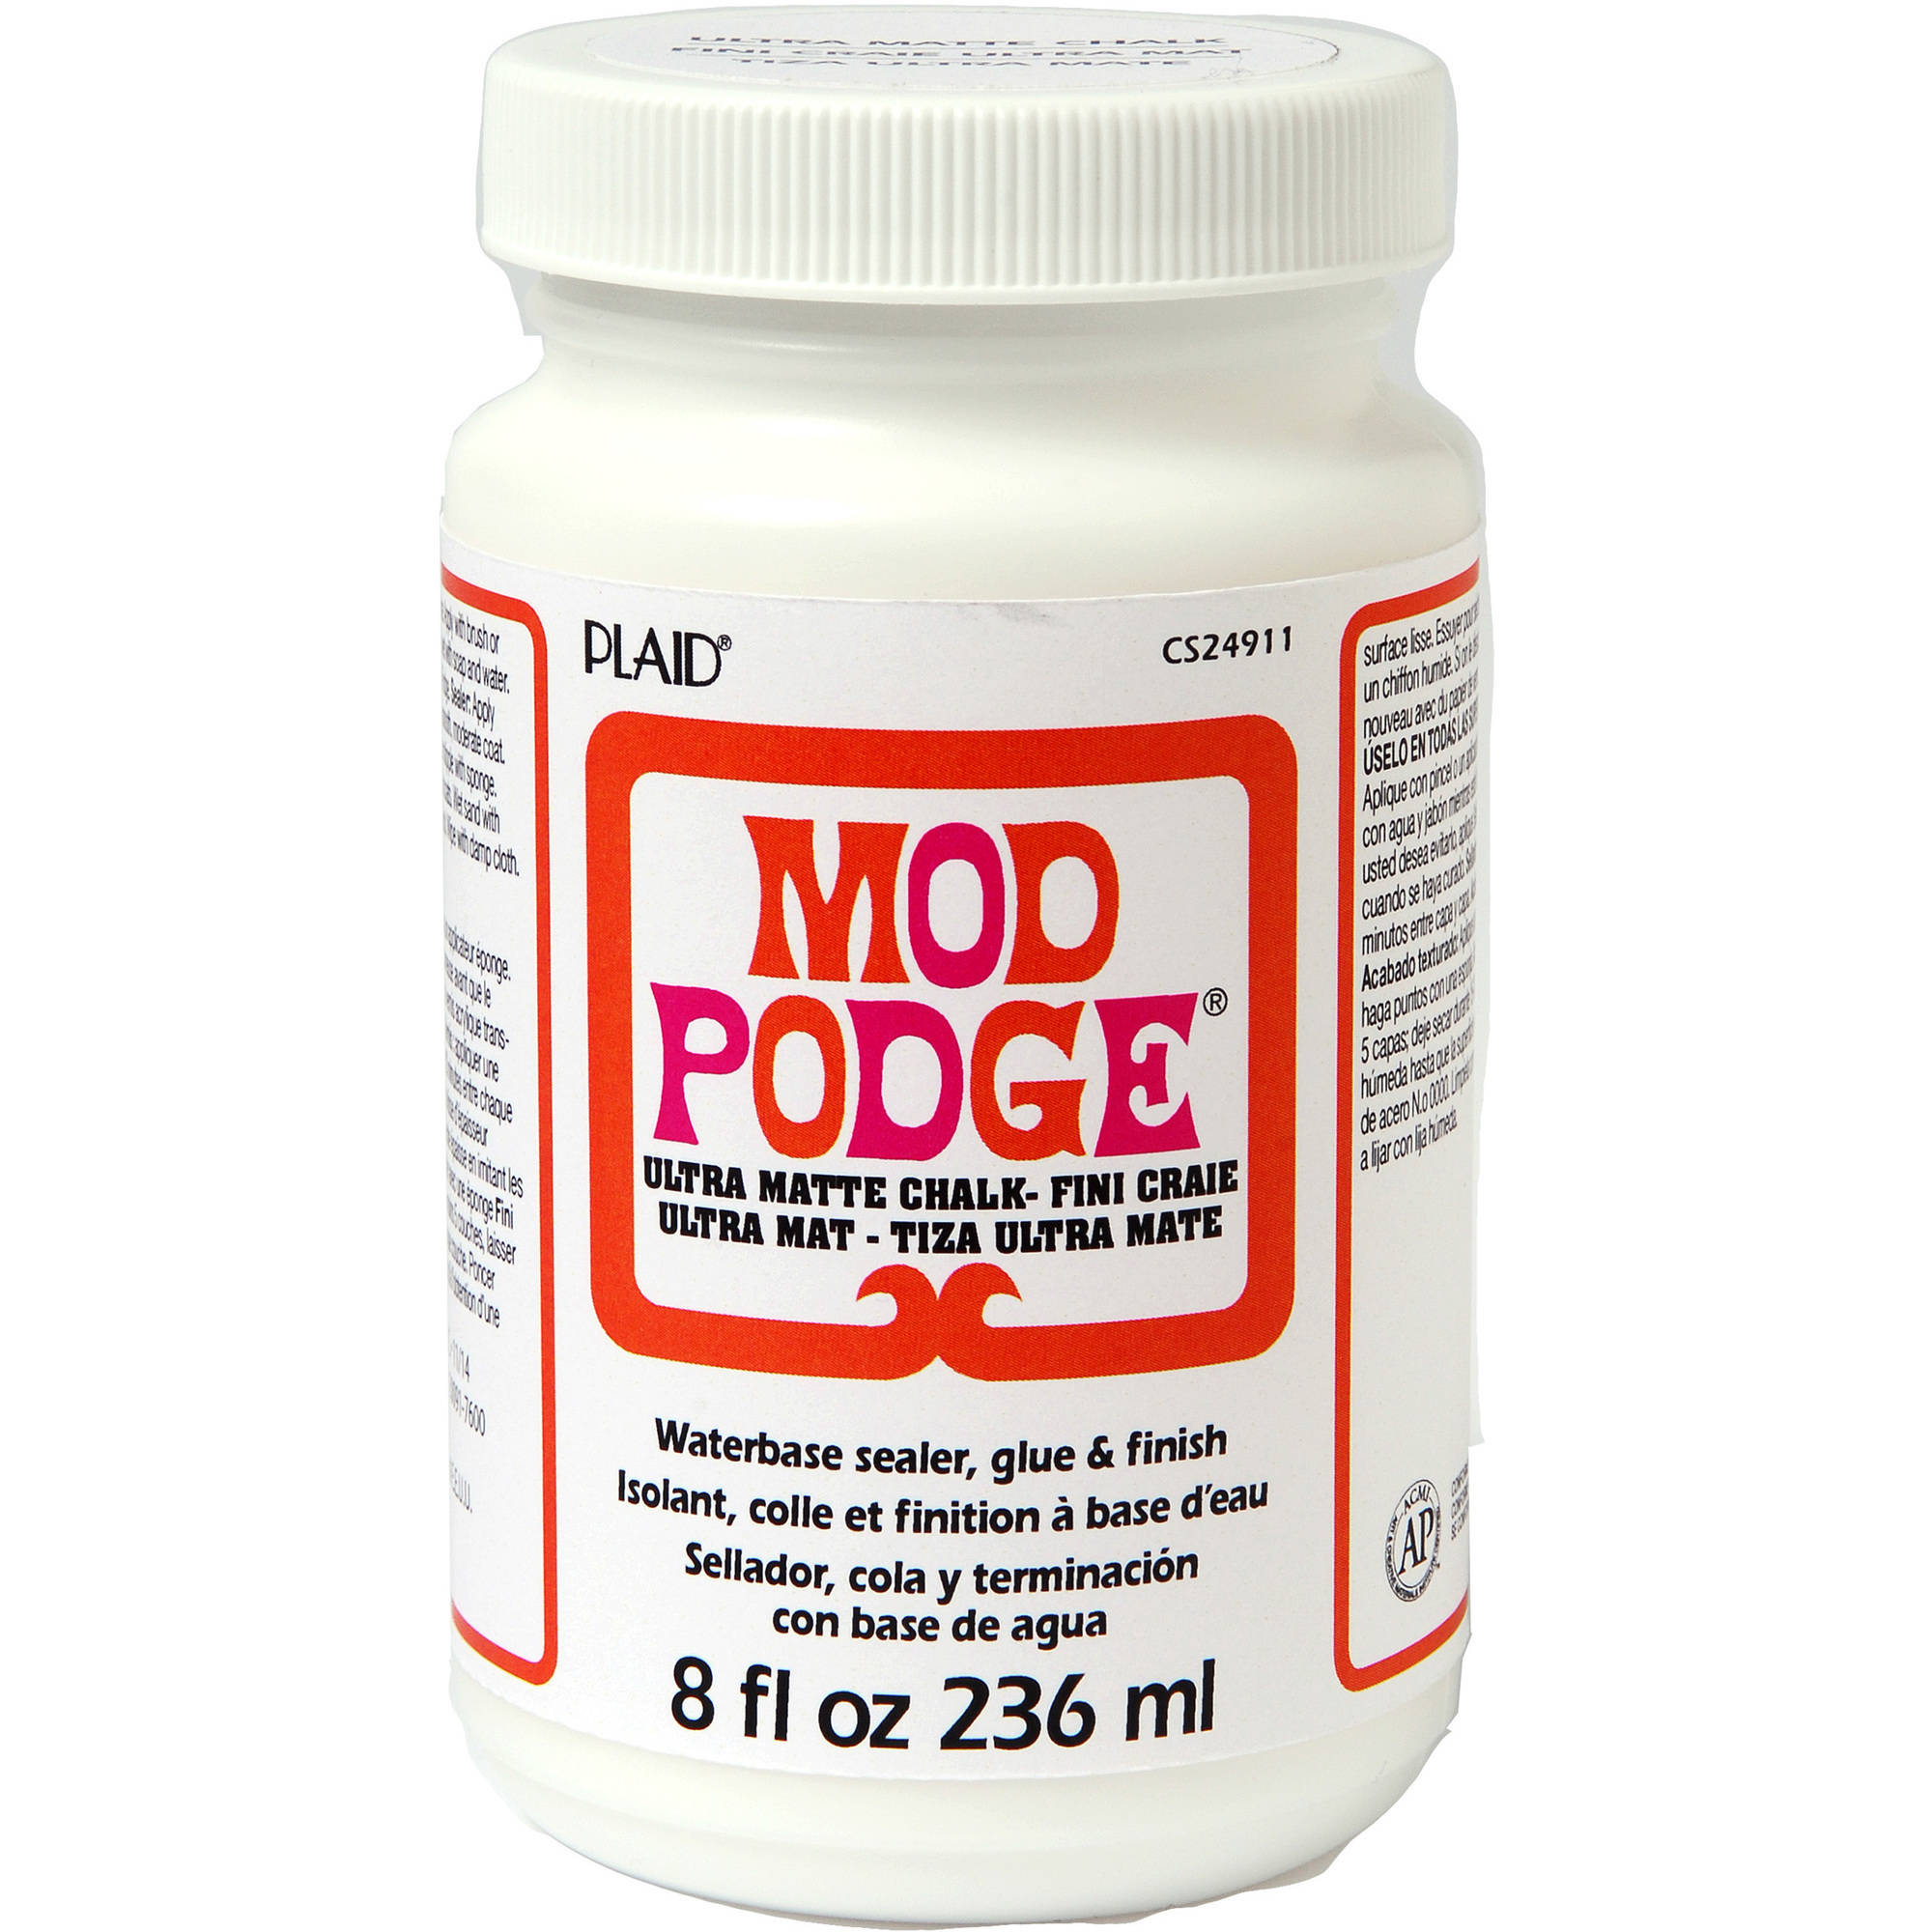 Mod   Podge Ultra Matte Chalk Finish, Glue, Sealer and Finish for Decoupage by   Plaid, 8 oz.